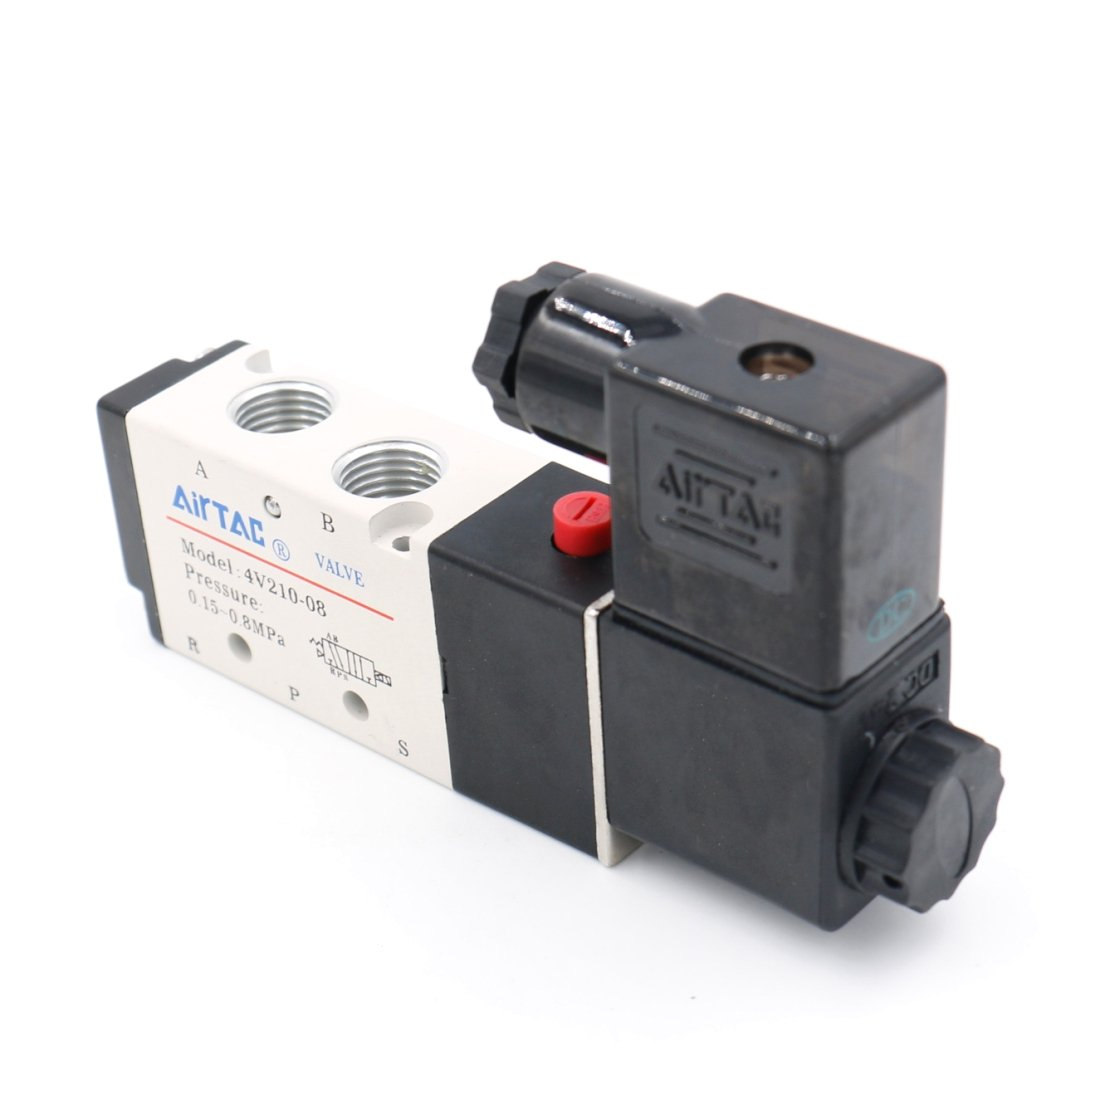 Baomain Pneumatic Air Control Solenoid Valve 4V210-08 DC24V 5 Way 2 Position PT1/4'' Internally Piloted Acting Type Single Electrical Control